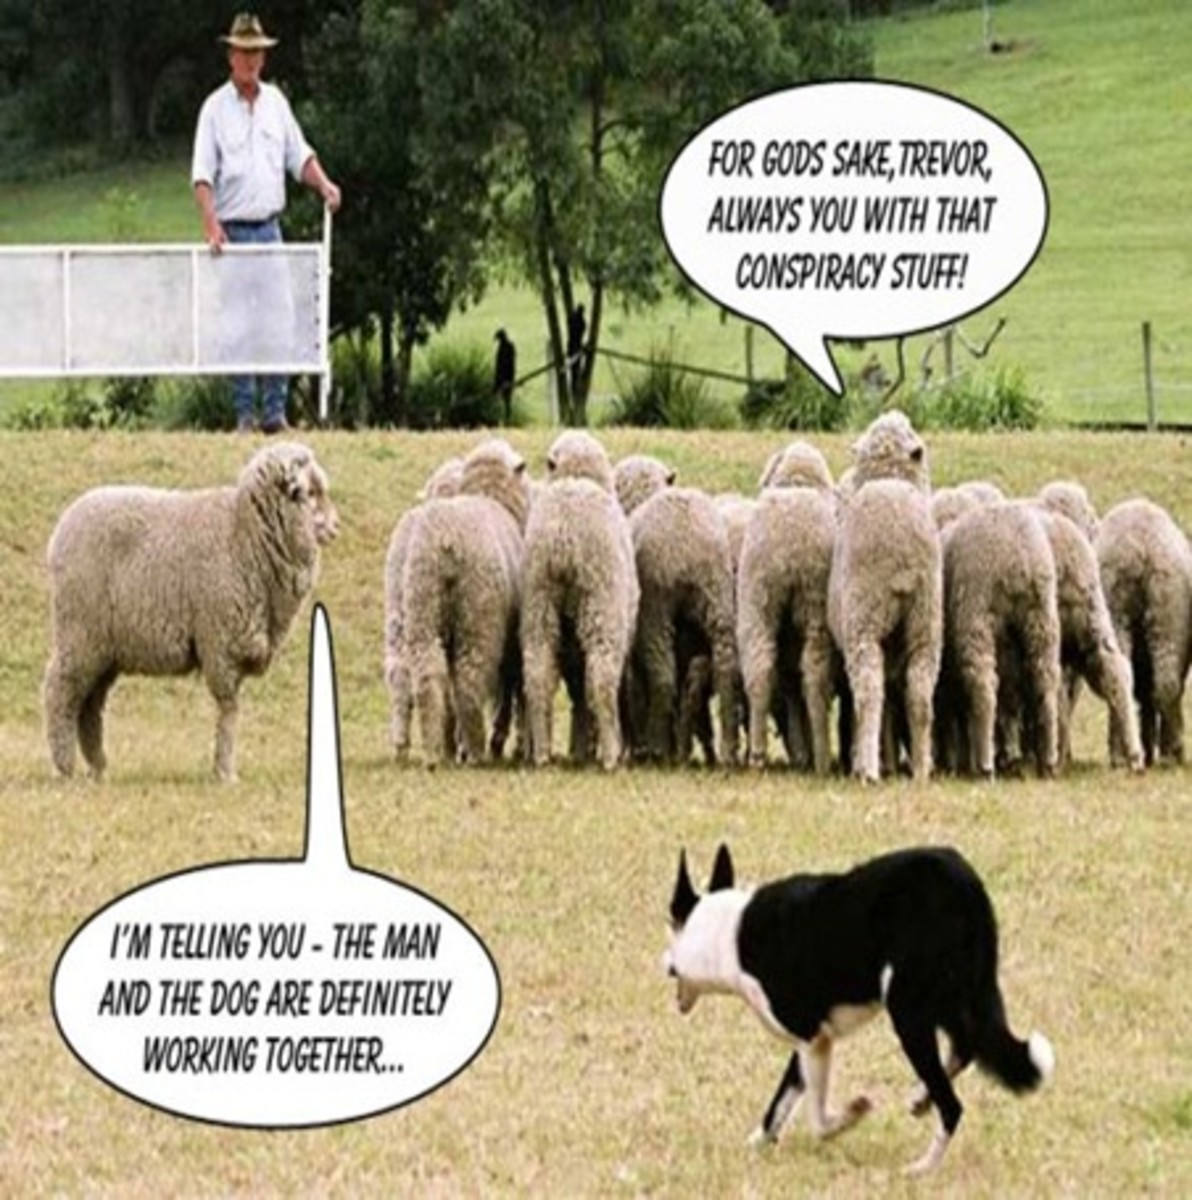 Why Conspiracy theorists and Priests call people sheep